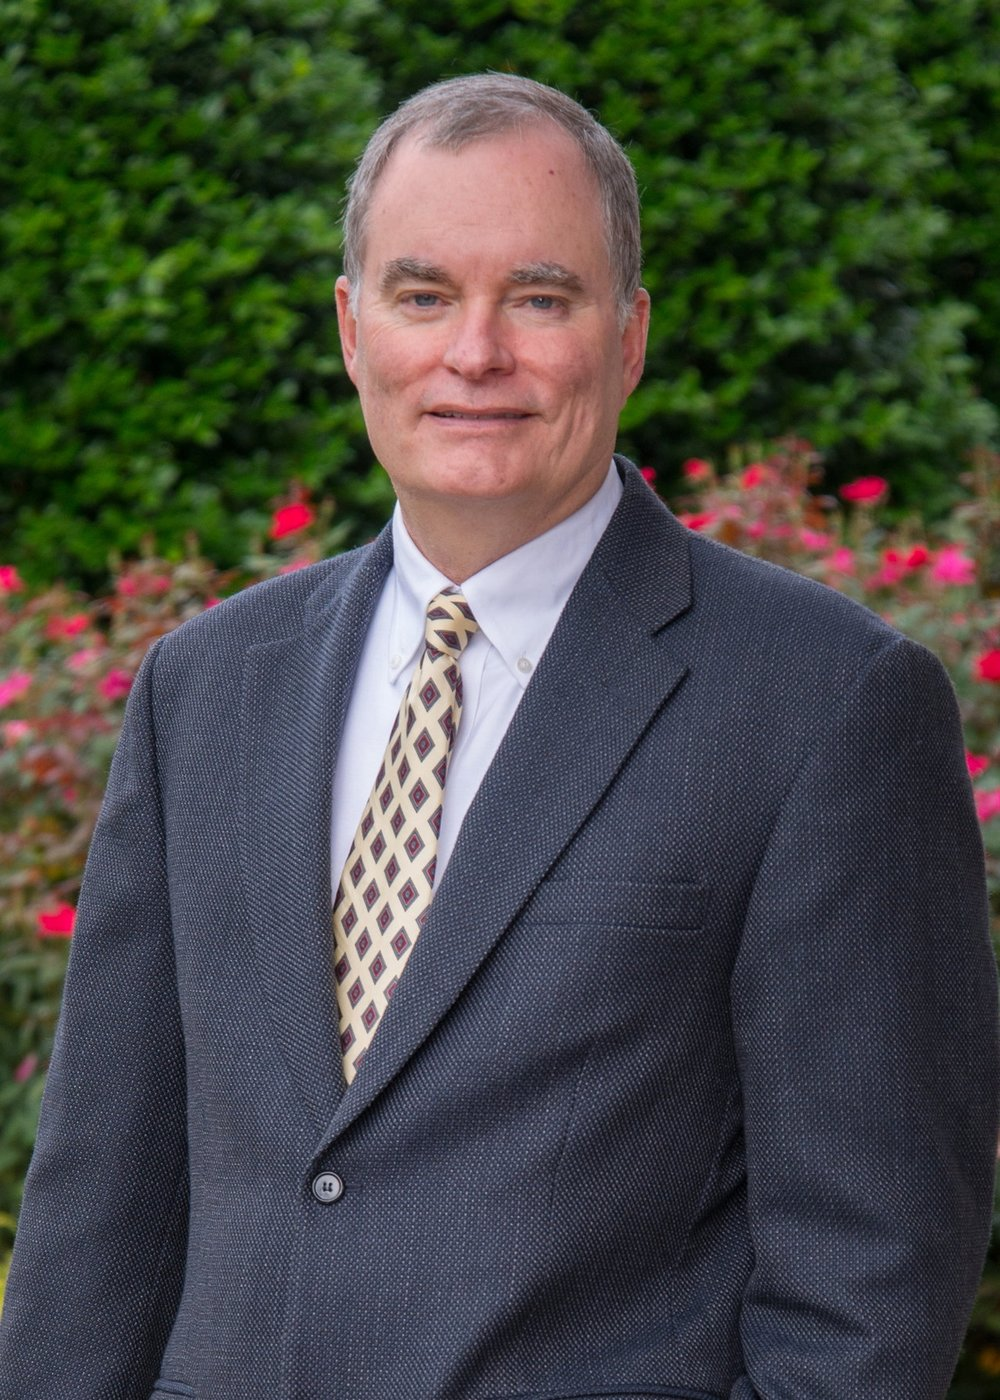 Steve Williams - Sr. Vice President